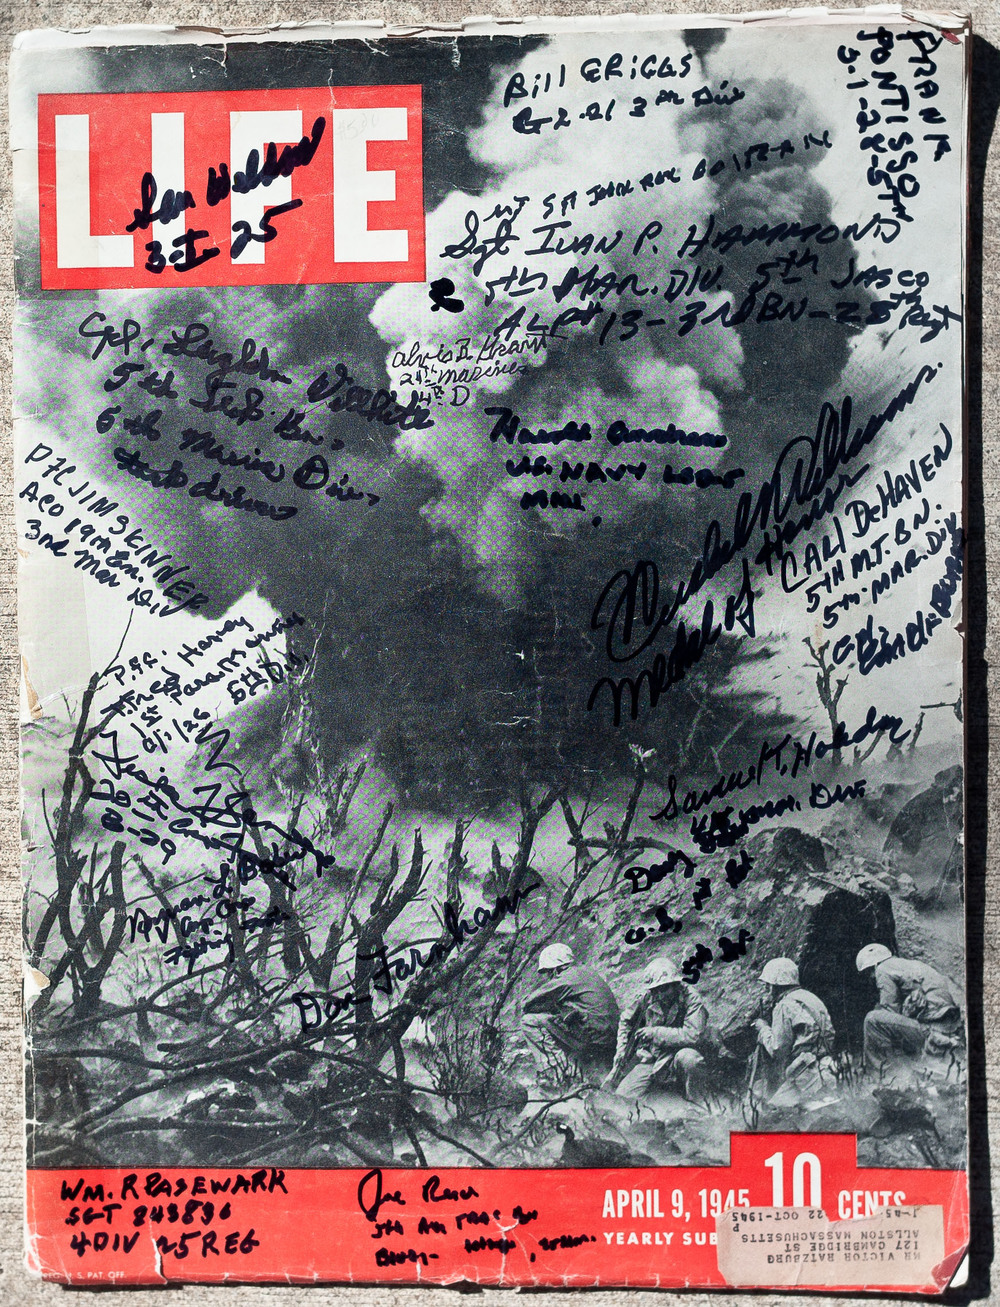 LIFE Magazine from 1945 with signatures of all the Iwo vets. The cover photo is a blockhouse on Iwo Jima being blown up.